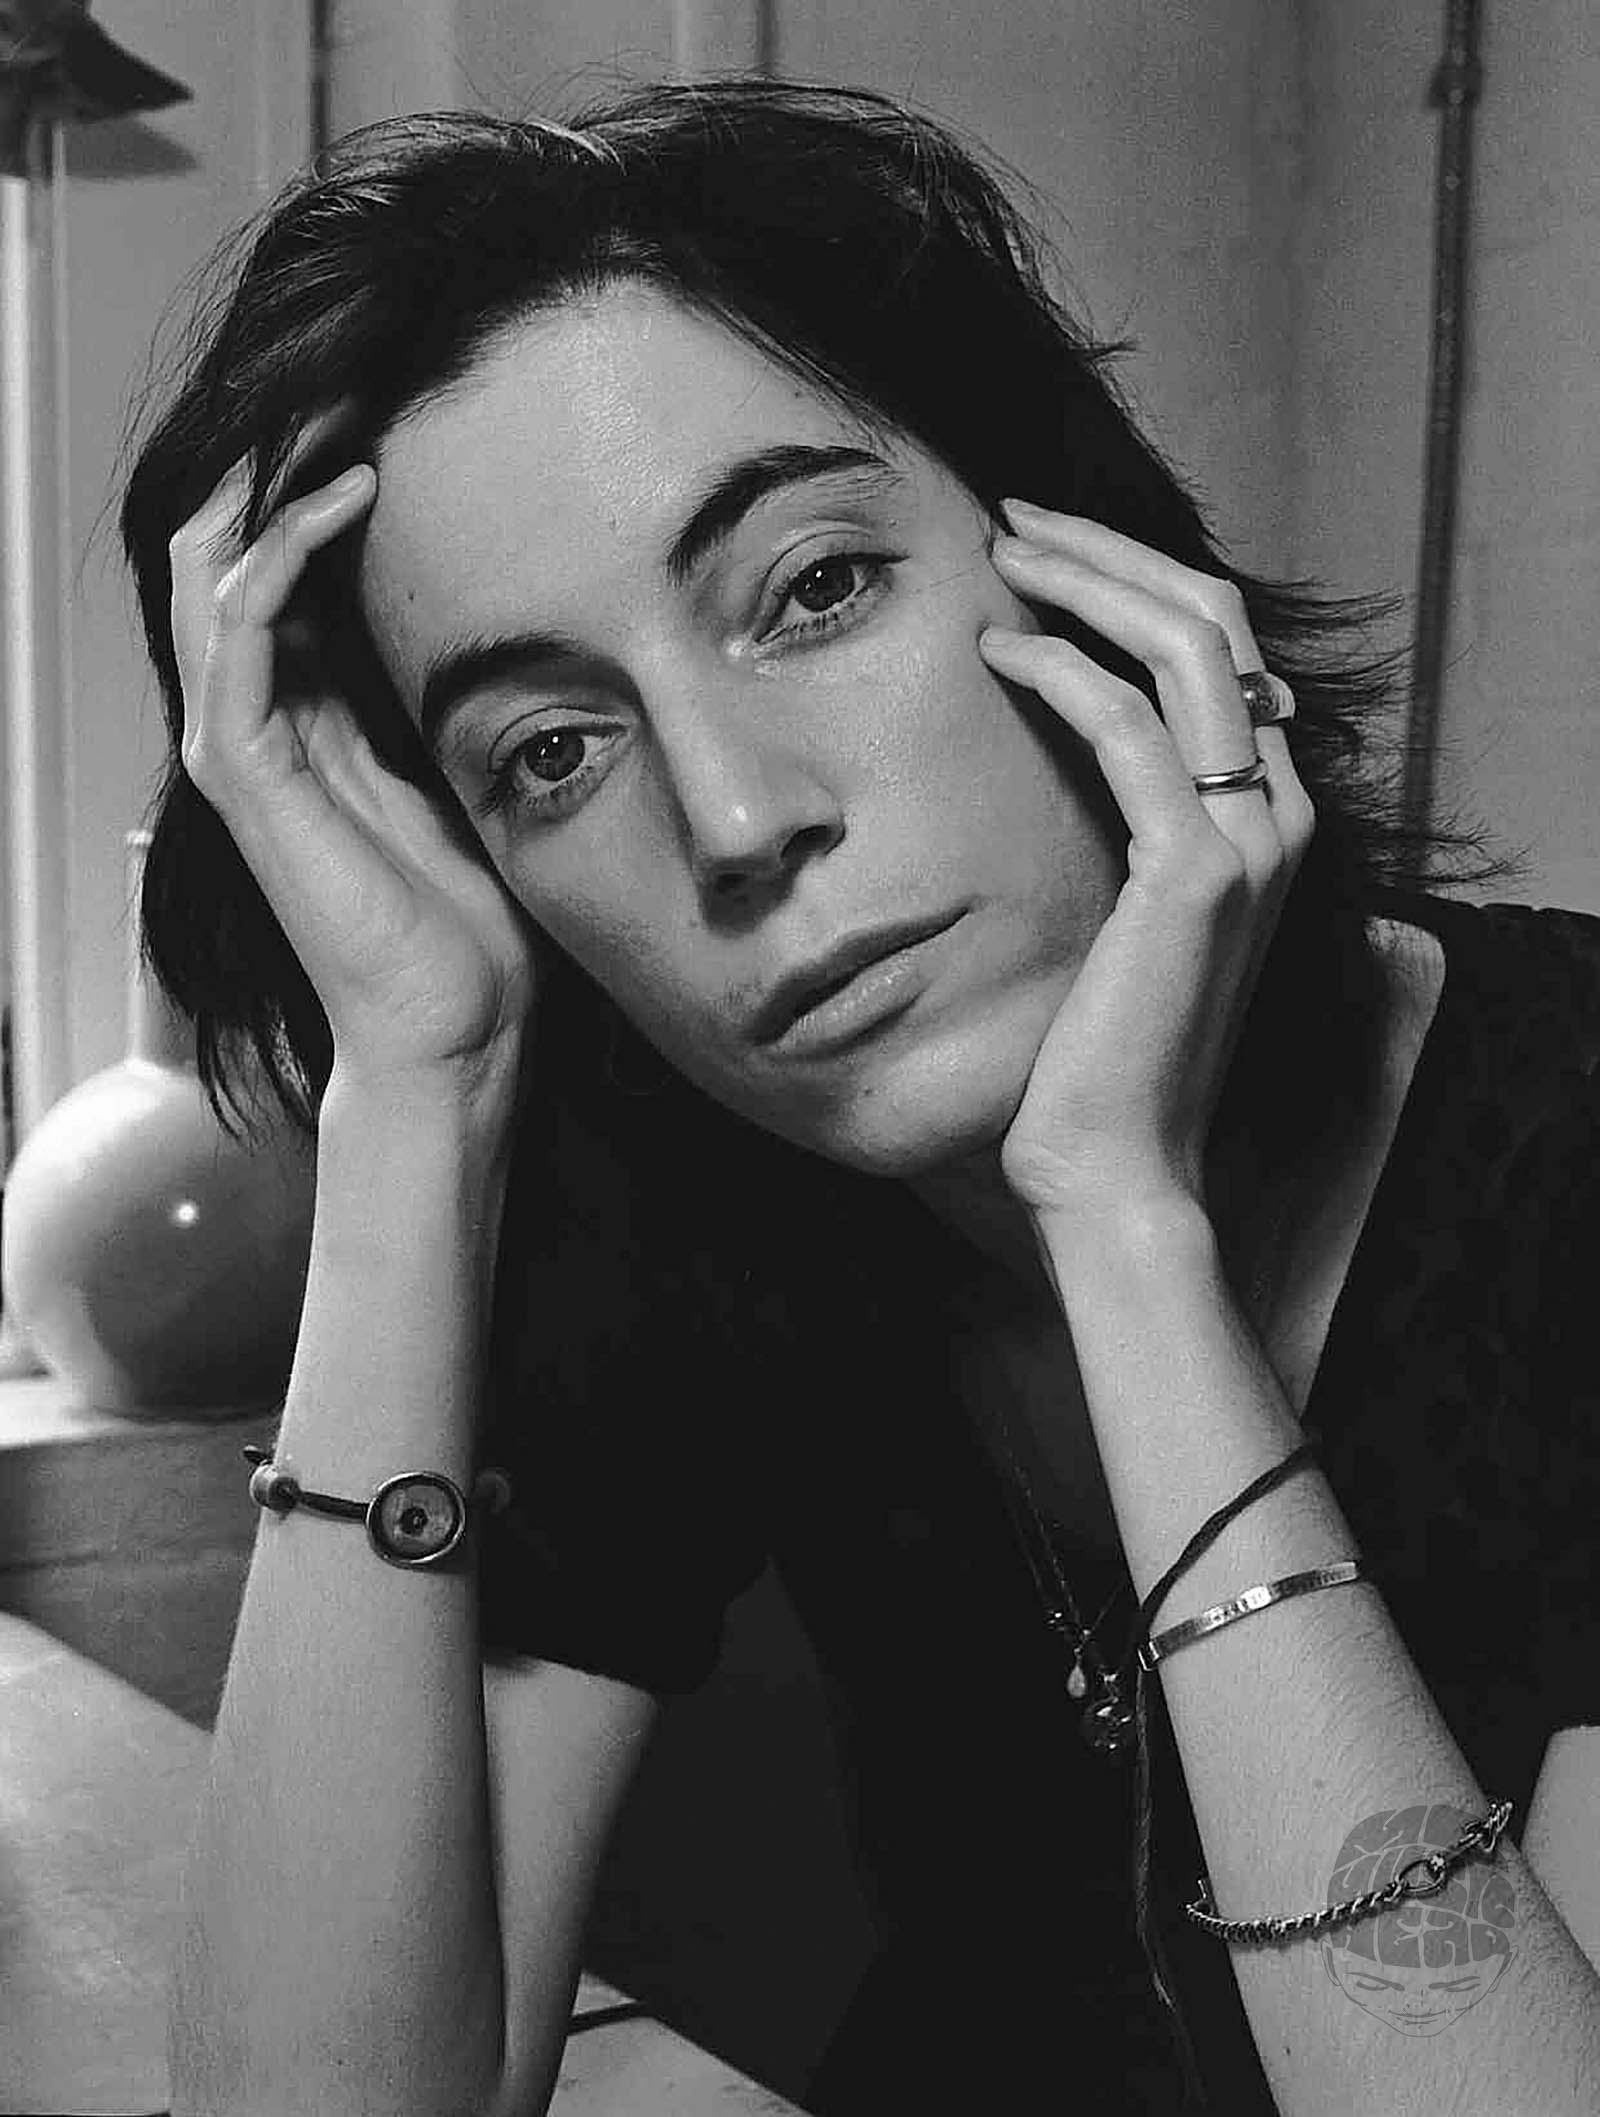 frank stefanko_Patti Smith_Vogue-2.jpg